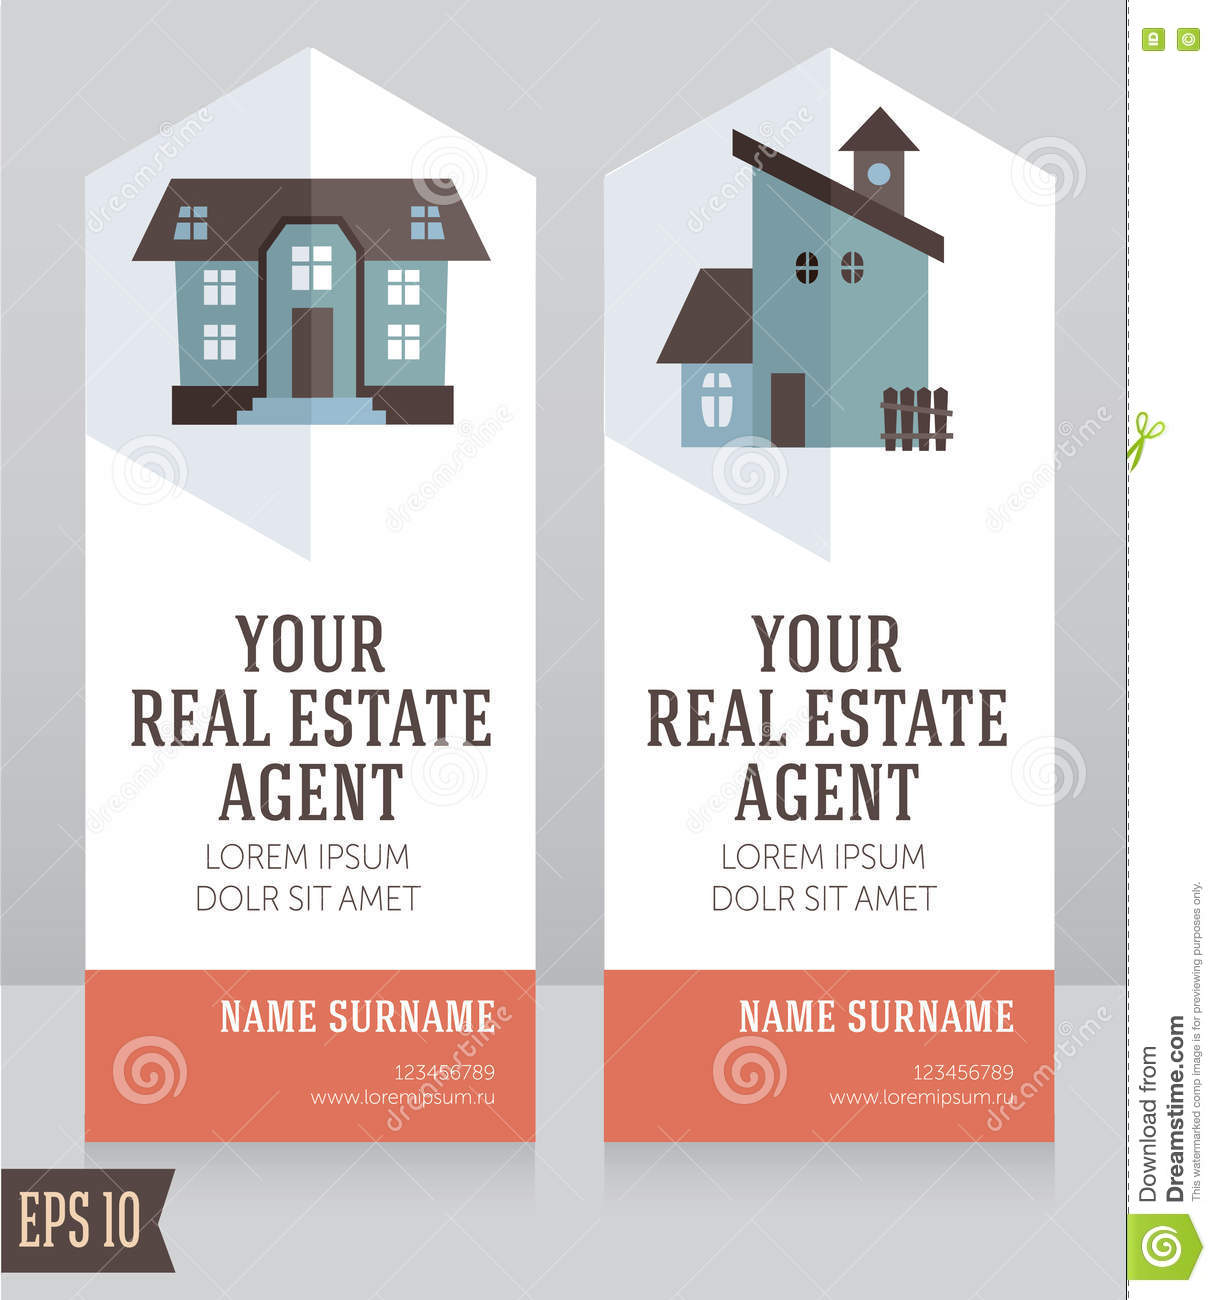 Design Template For Real Estate Agent Business Card Stock Vector ...